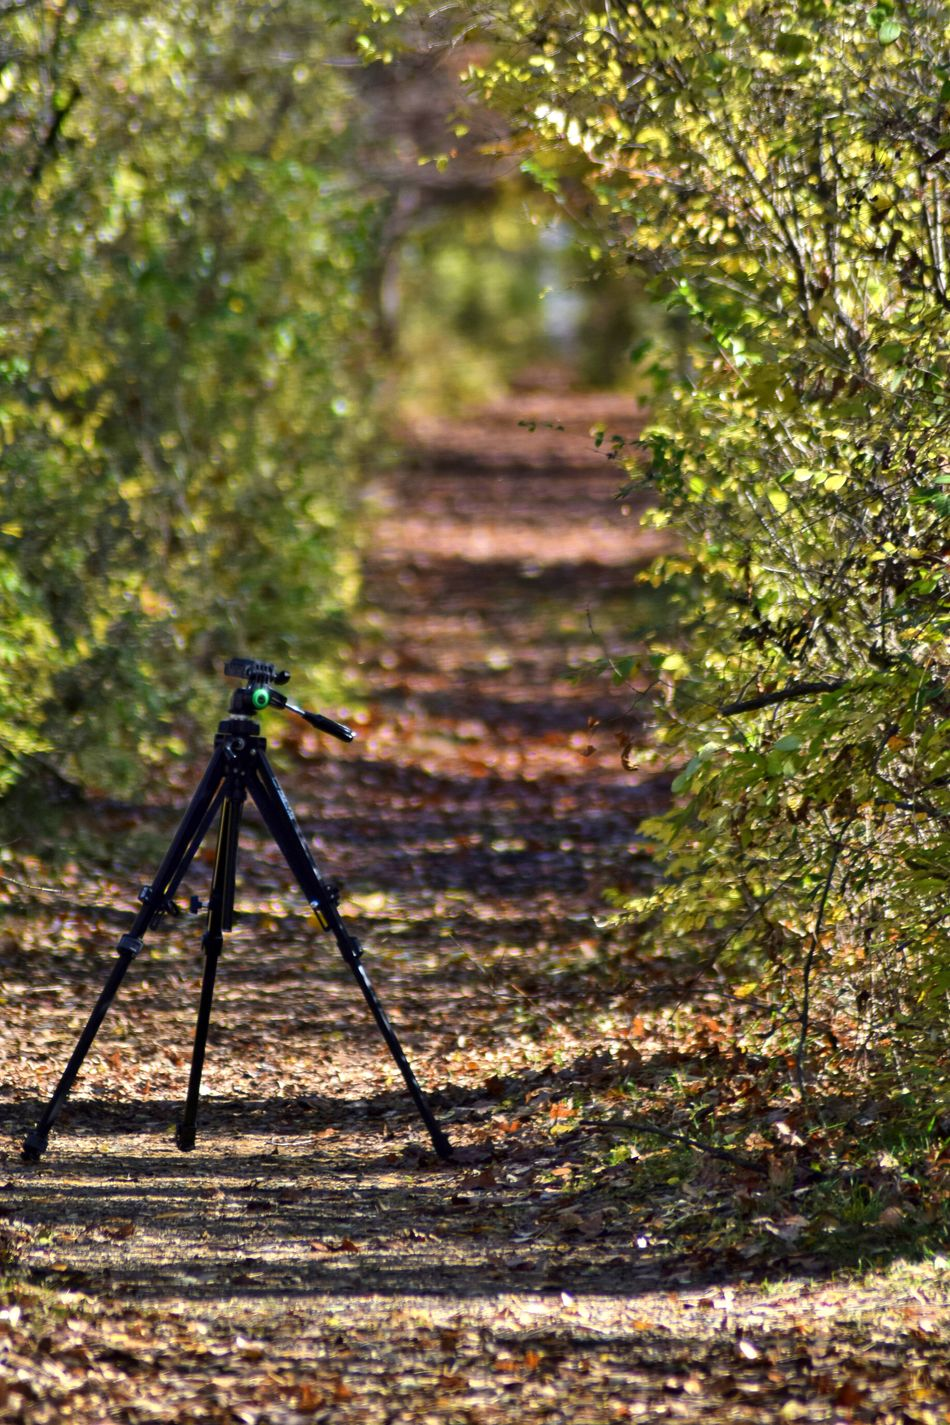 Focus On Foreground Nature Outdoors Day No People Tree Close-up Tripod Tripod At Its Finest Tripod Photography Hiking Trail Hiking View Tree Canopy